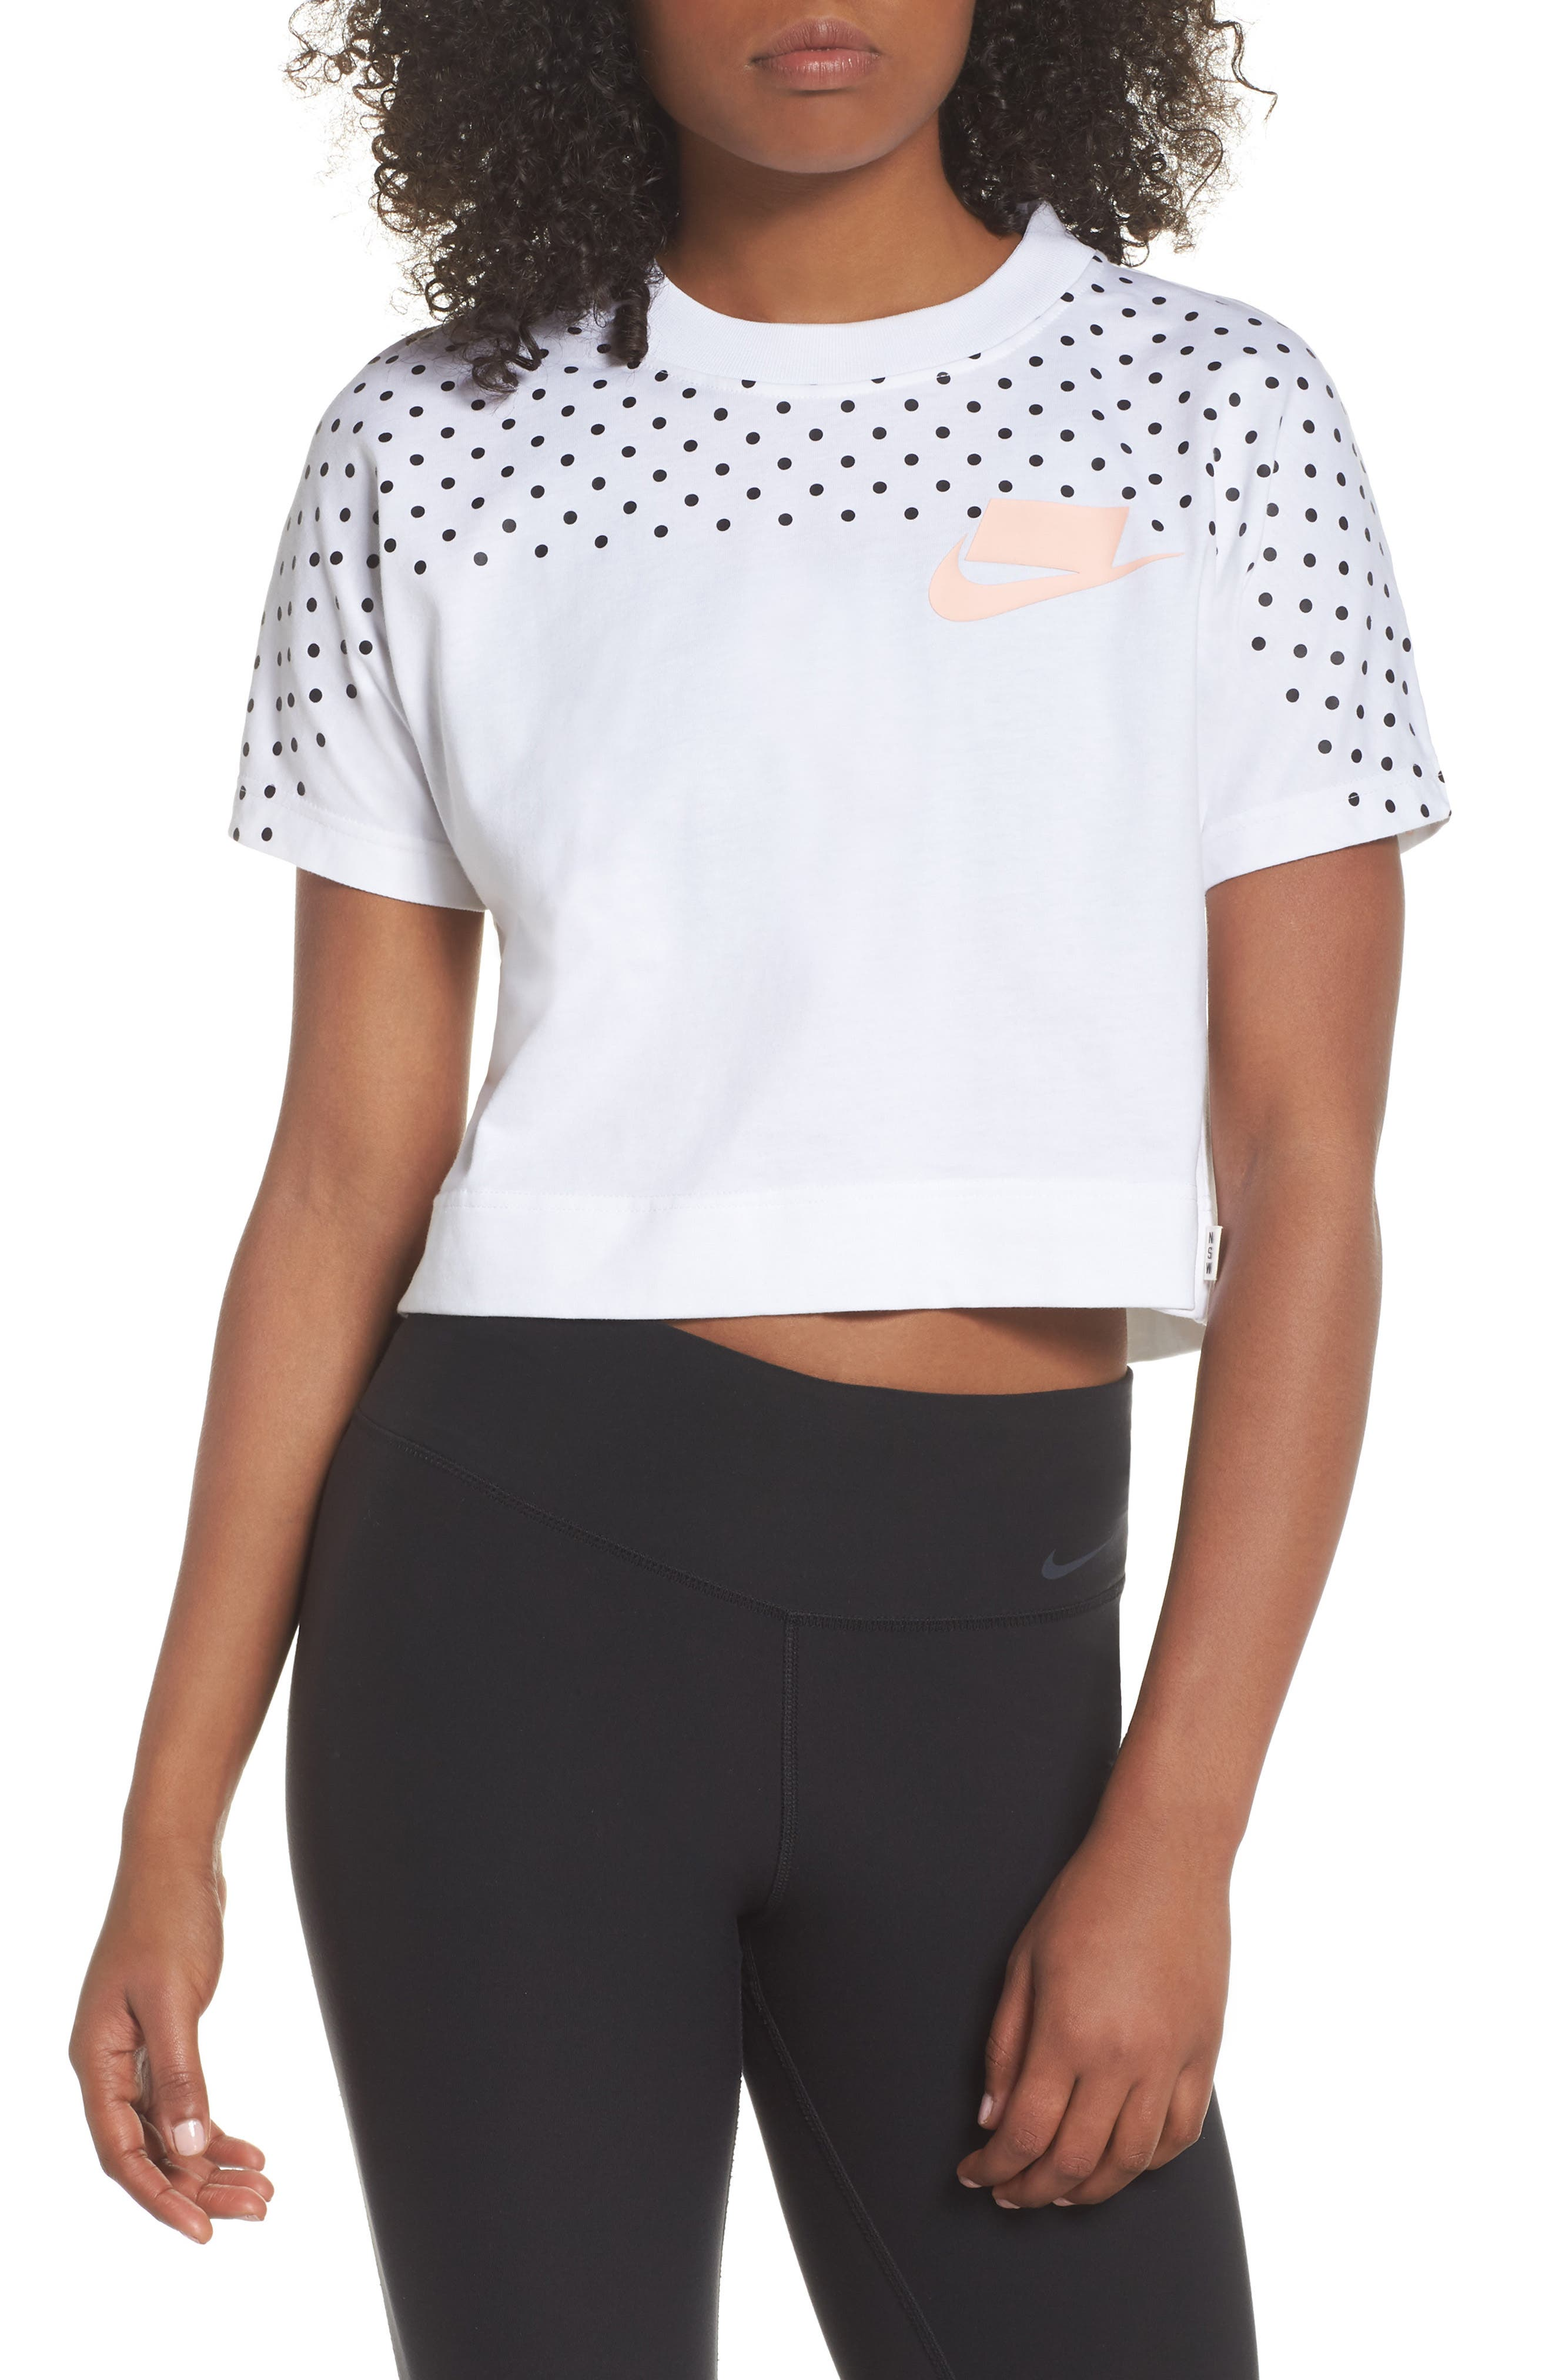 Sportswear NSW Women's Short Sleeve Crop Top,                             Alternate thumbnail 2, color,                             100